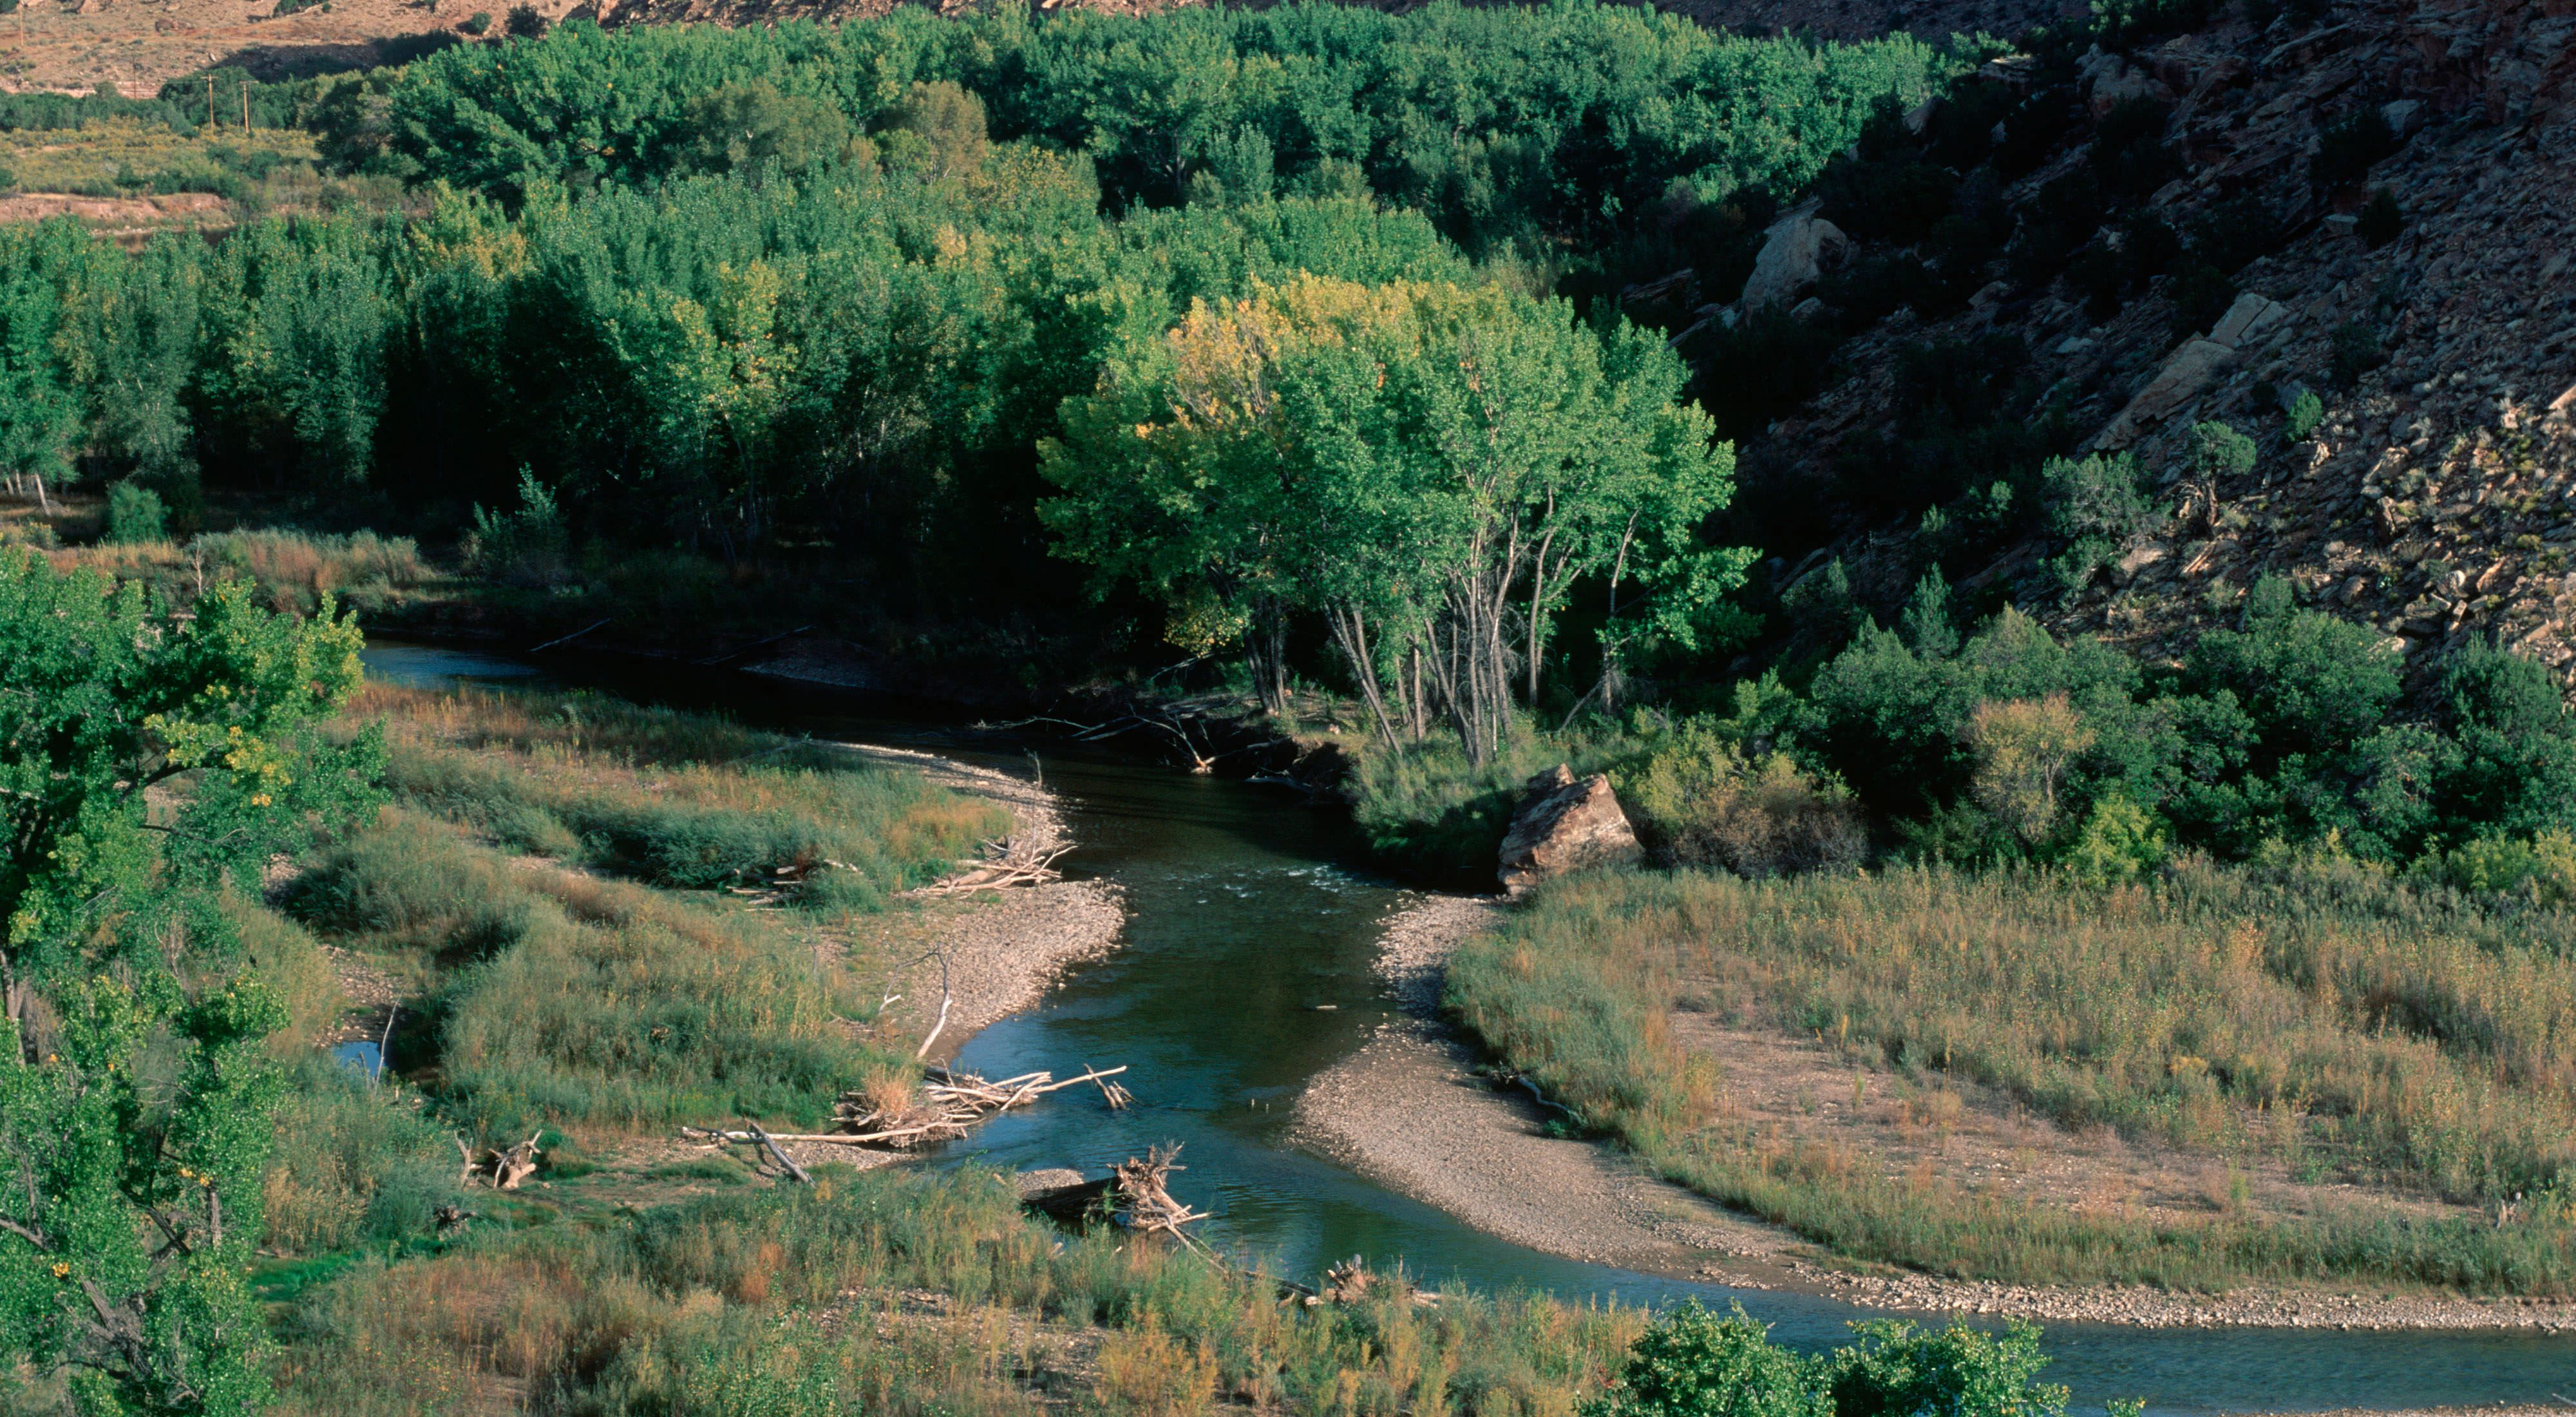 A river meandering through trees and sandy, grassy banks.